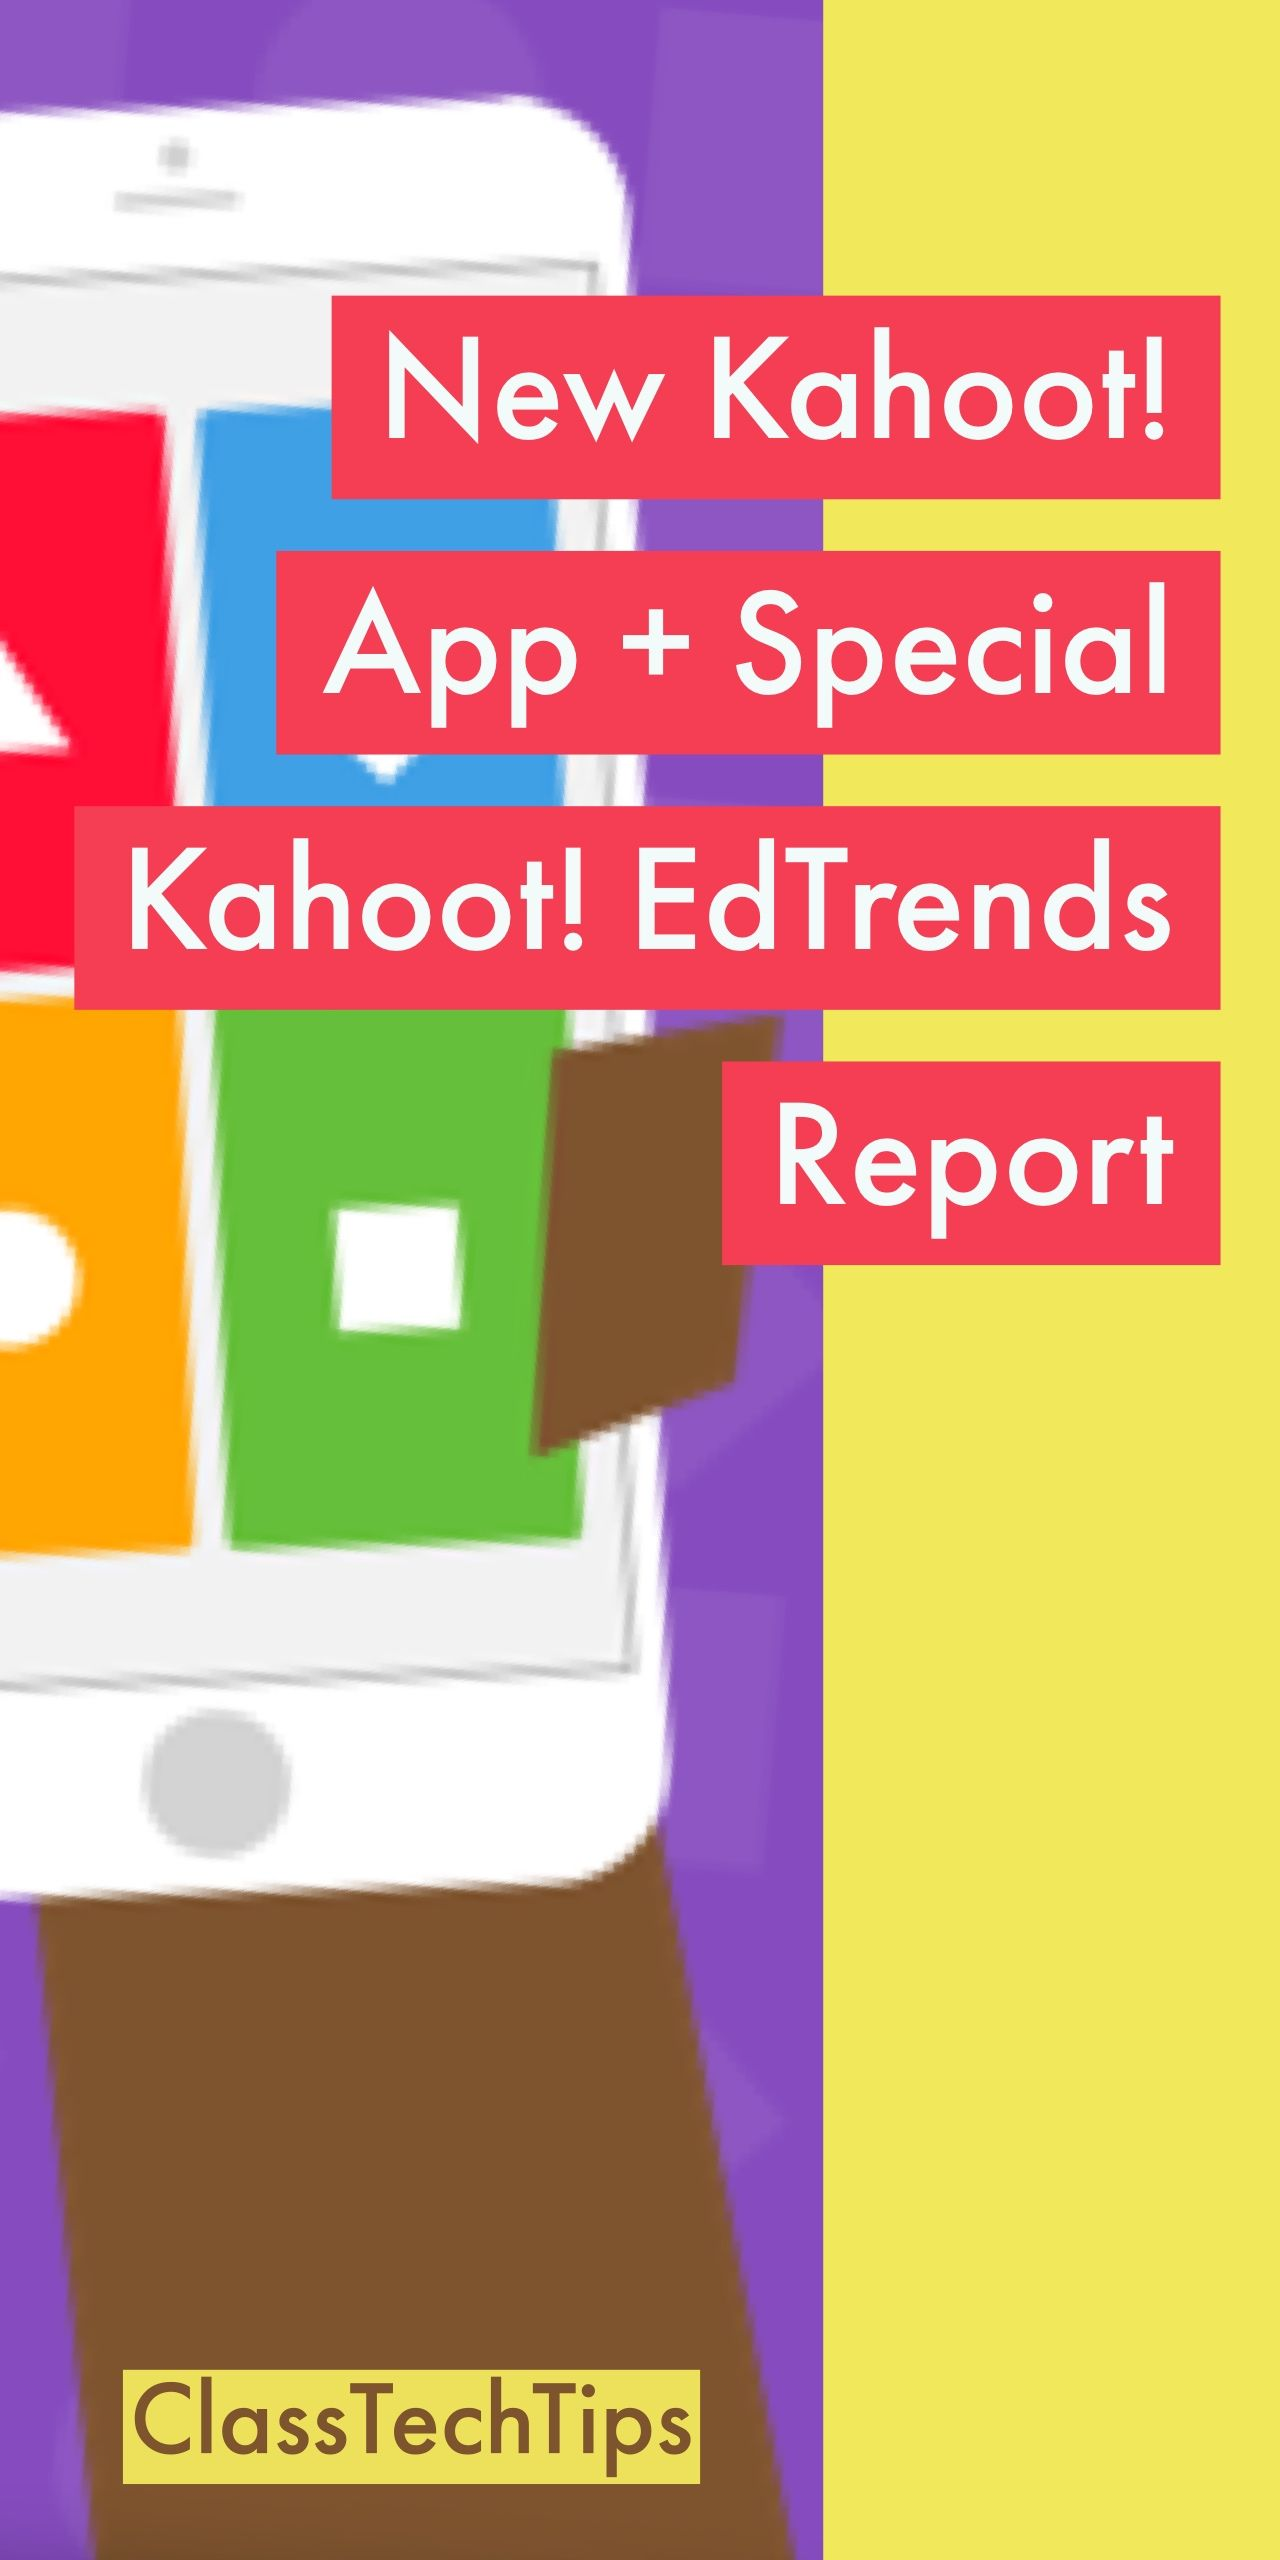 New Kahoot App  Special Kahoot Edtrends Report  Formative